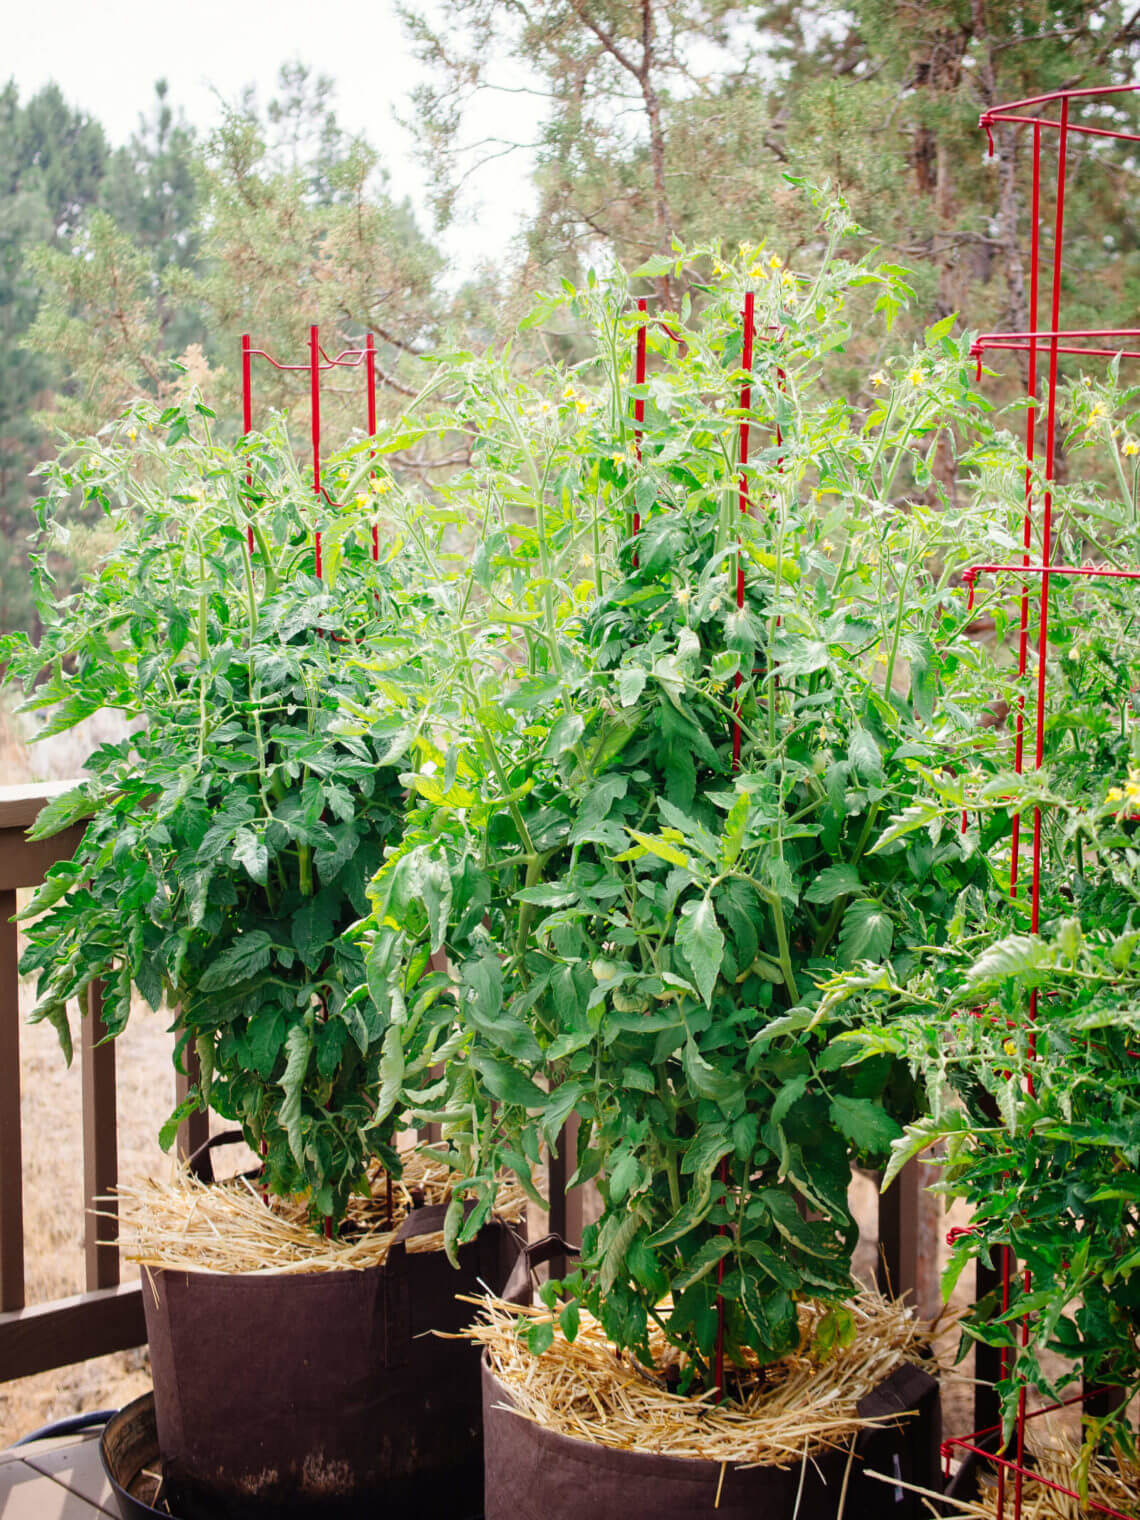 How to grow tomatoes in pots like a gardening pro